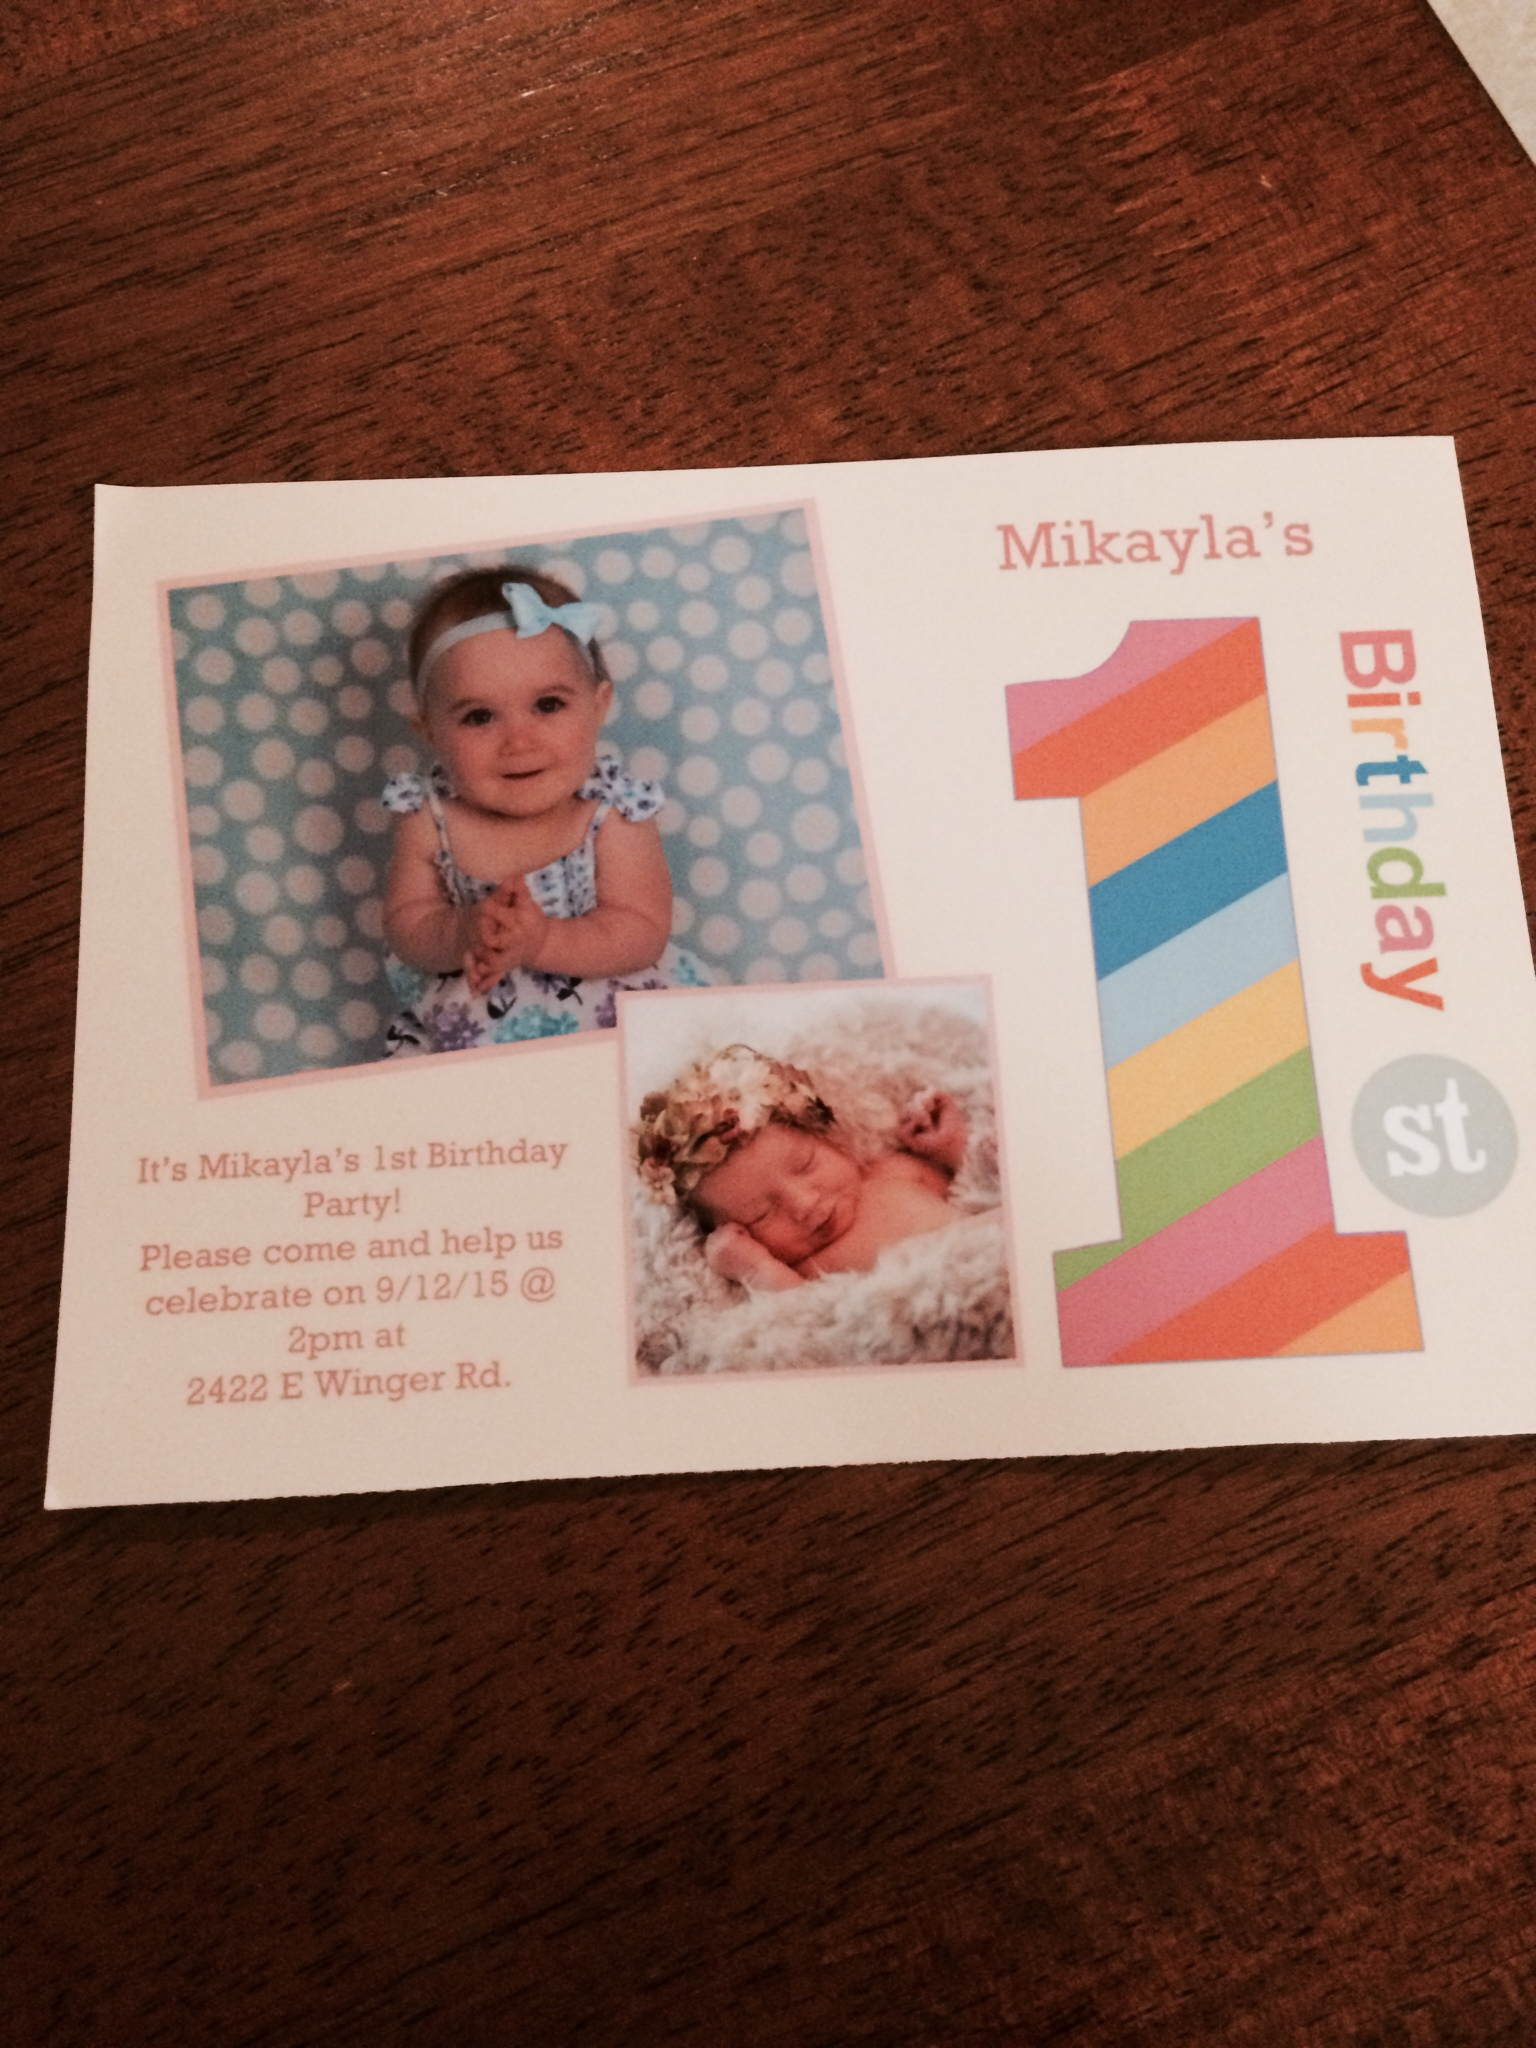 This is the invitation I received for Mikayla's birthday party.